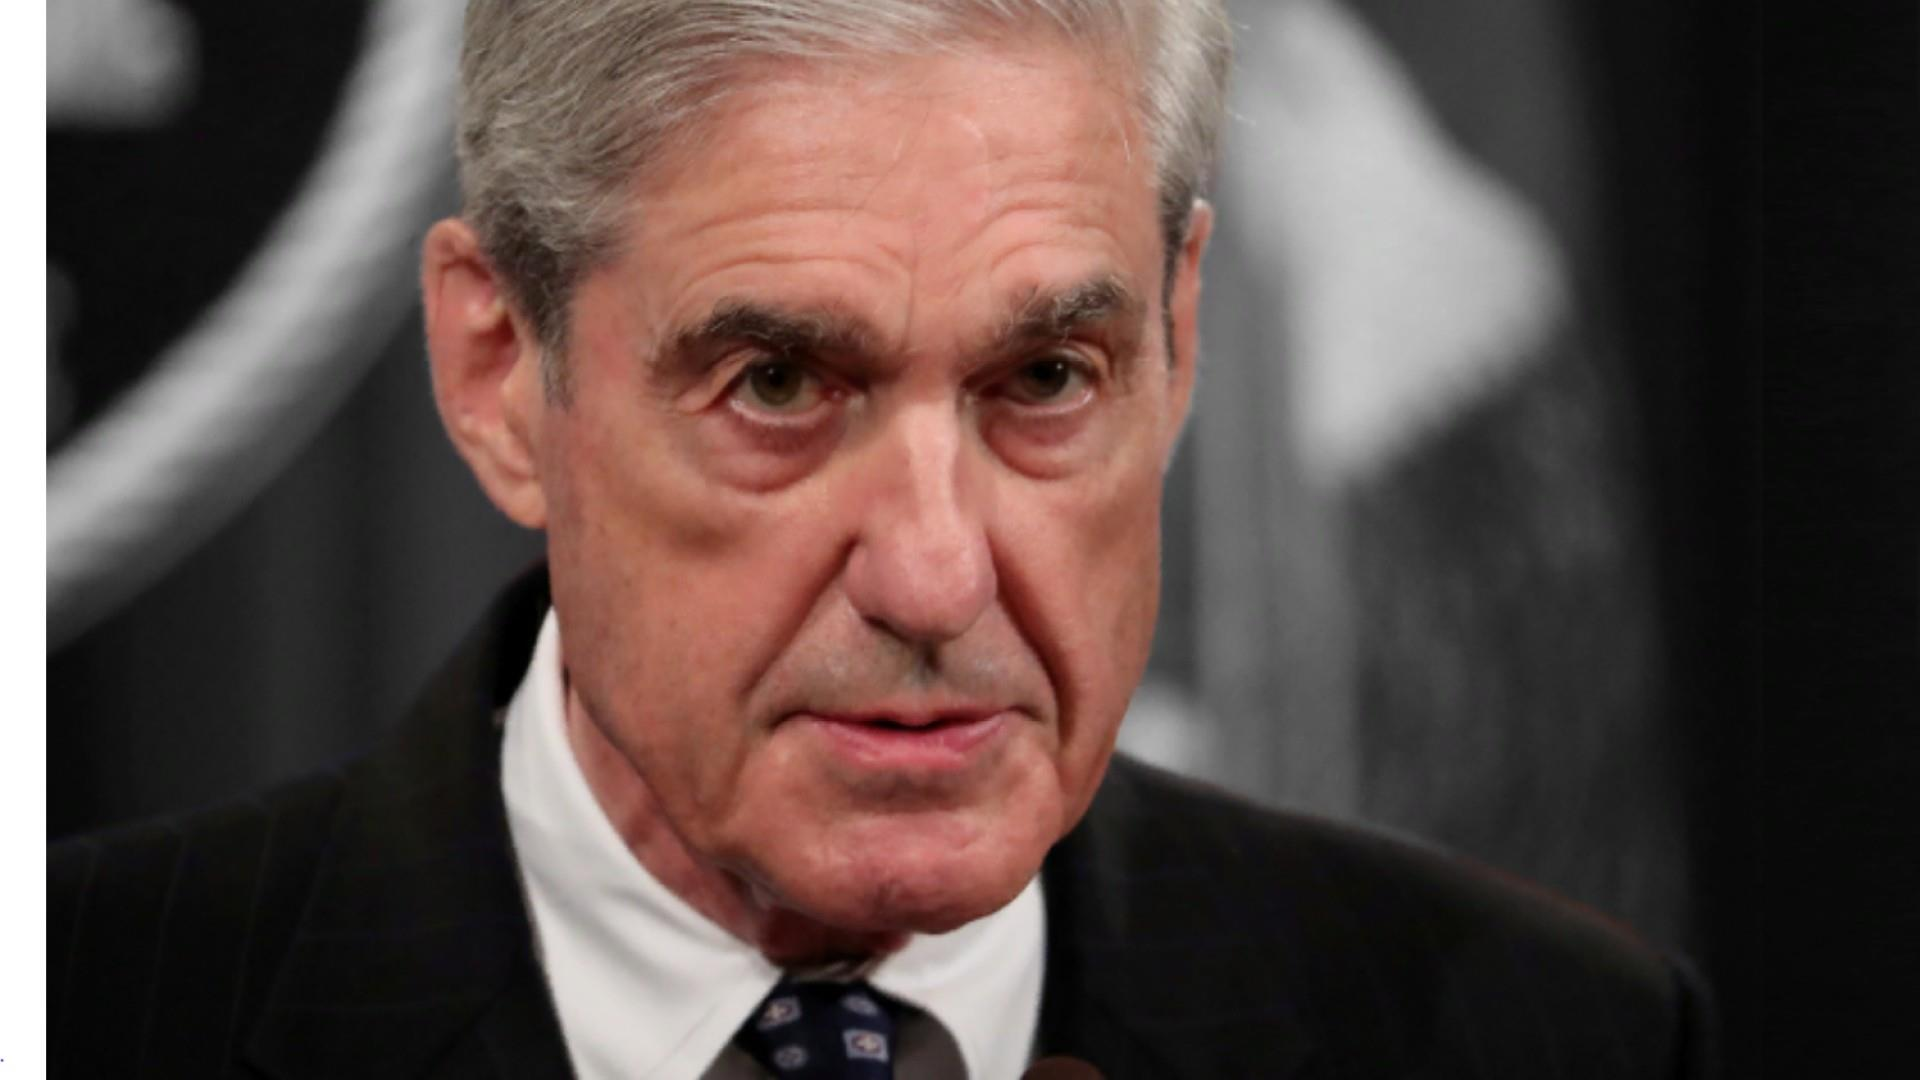 DOJ Warns Mueller: Keep Your Testimony to the Report